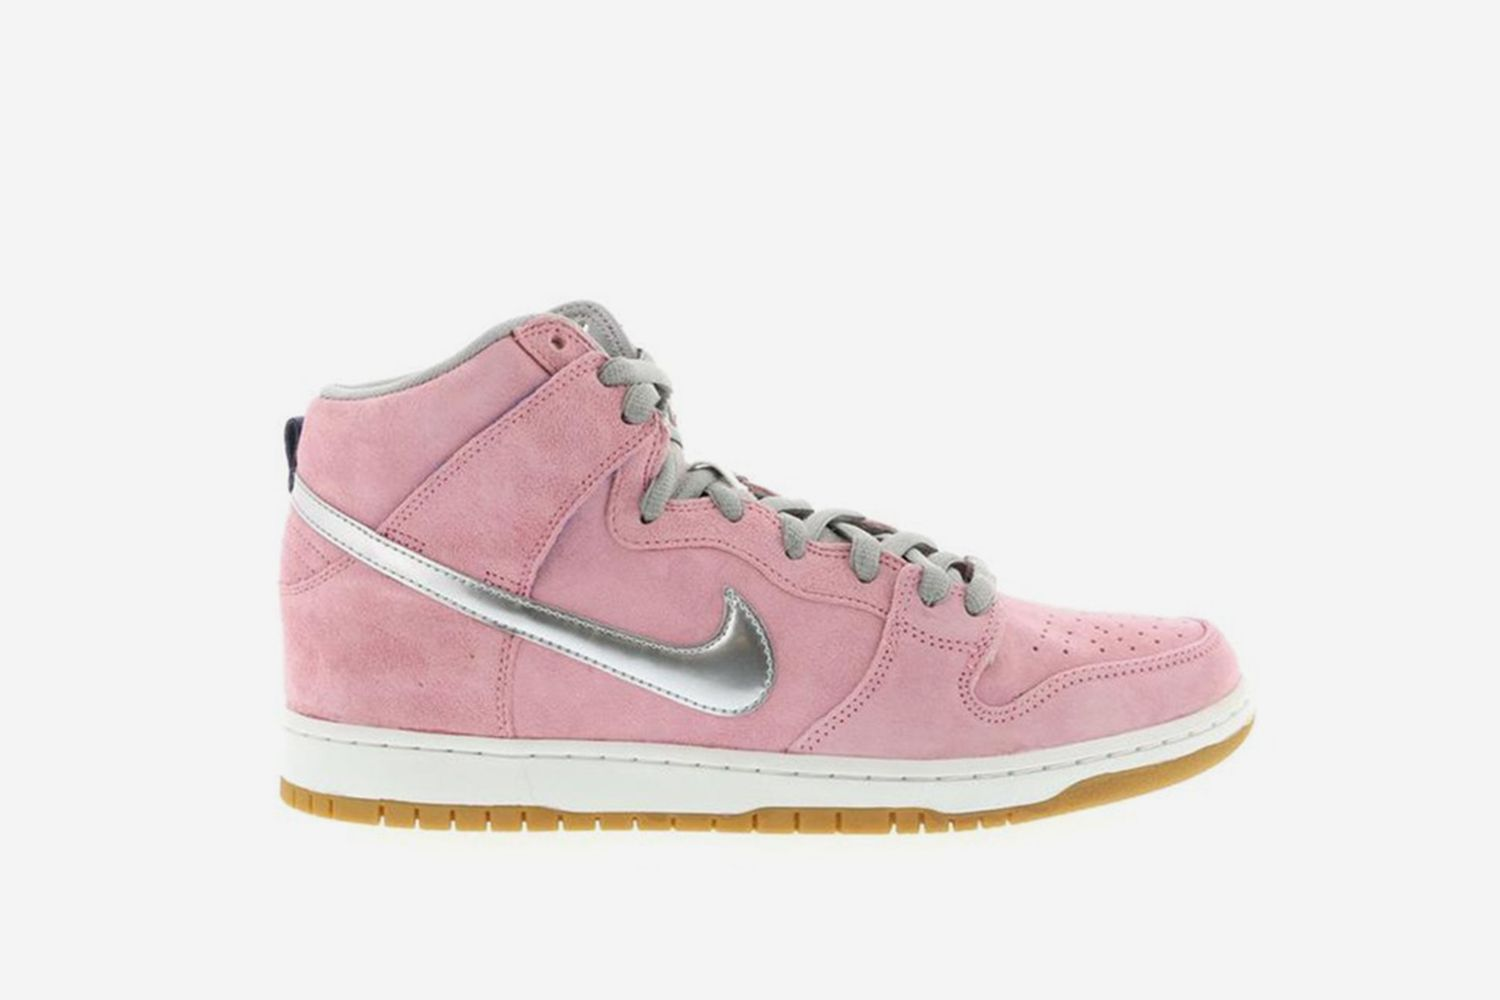 Dunk SB High Concepts When Pigs Fly